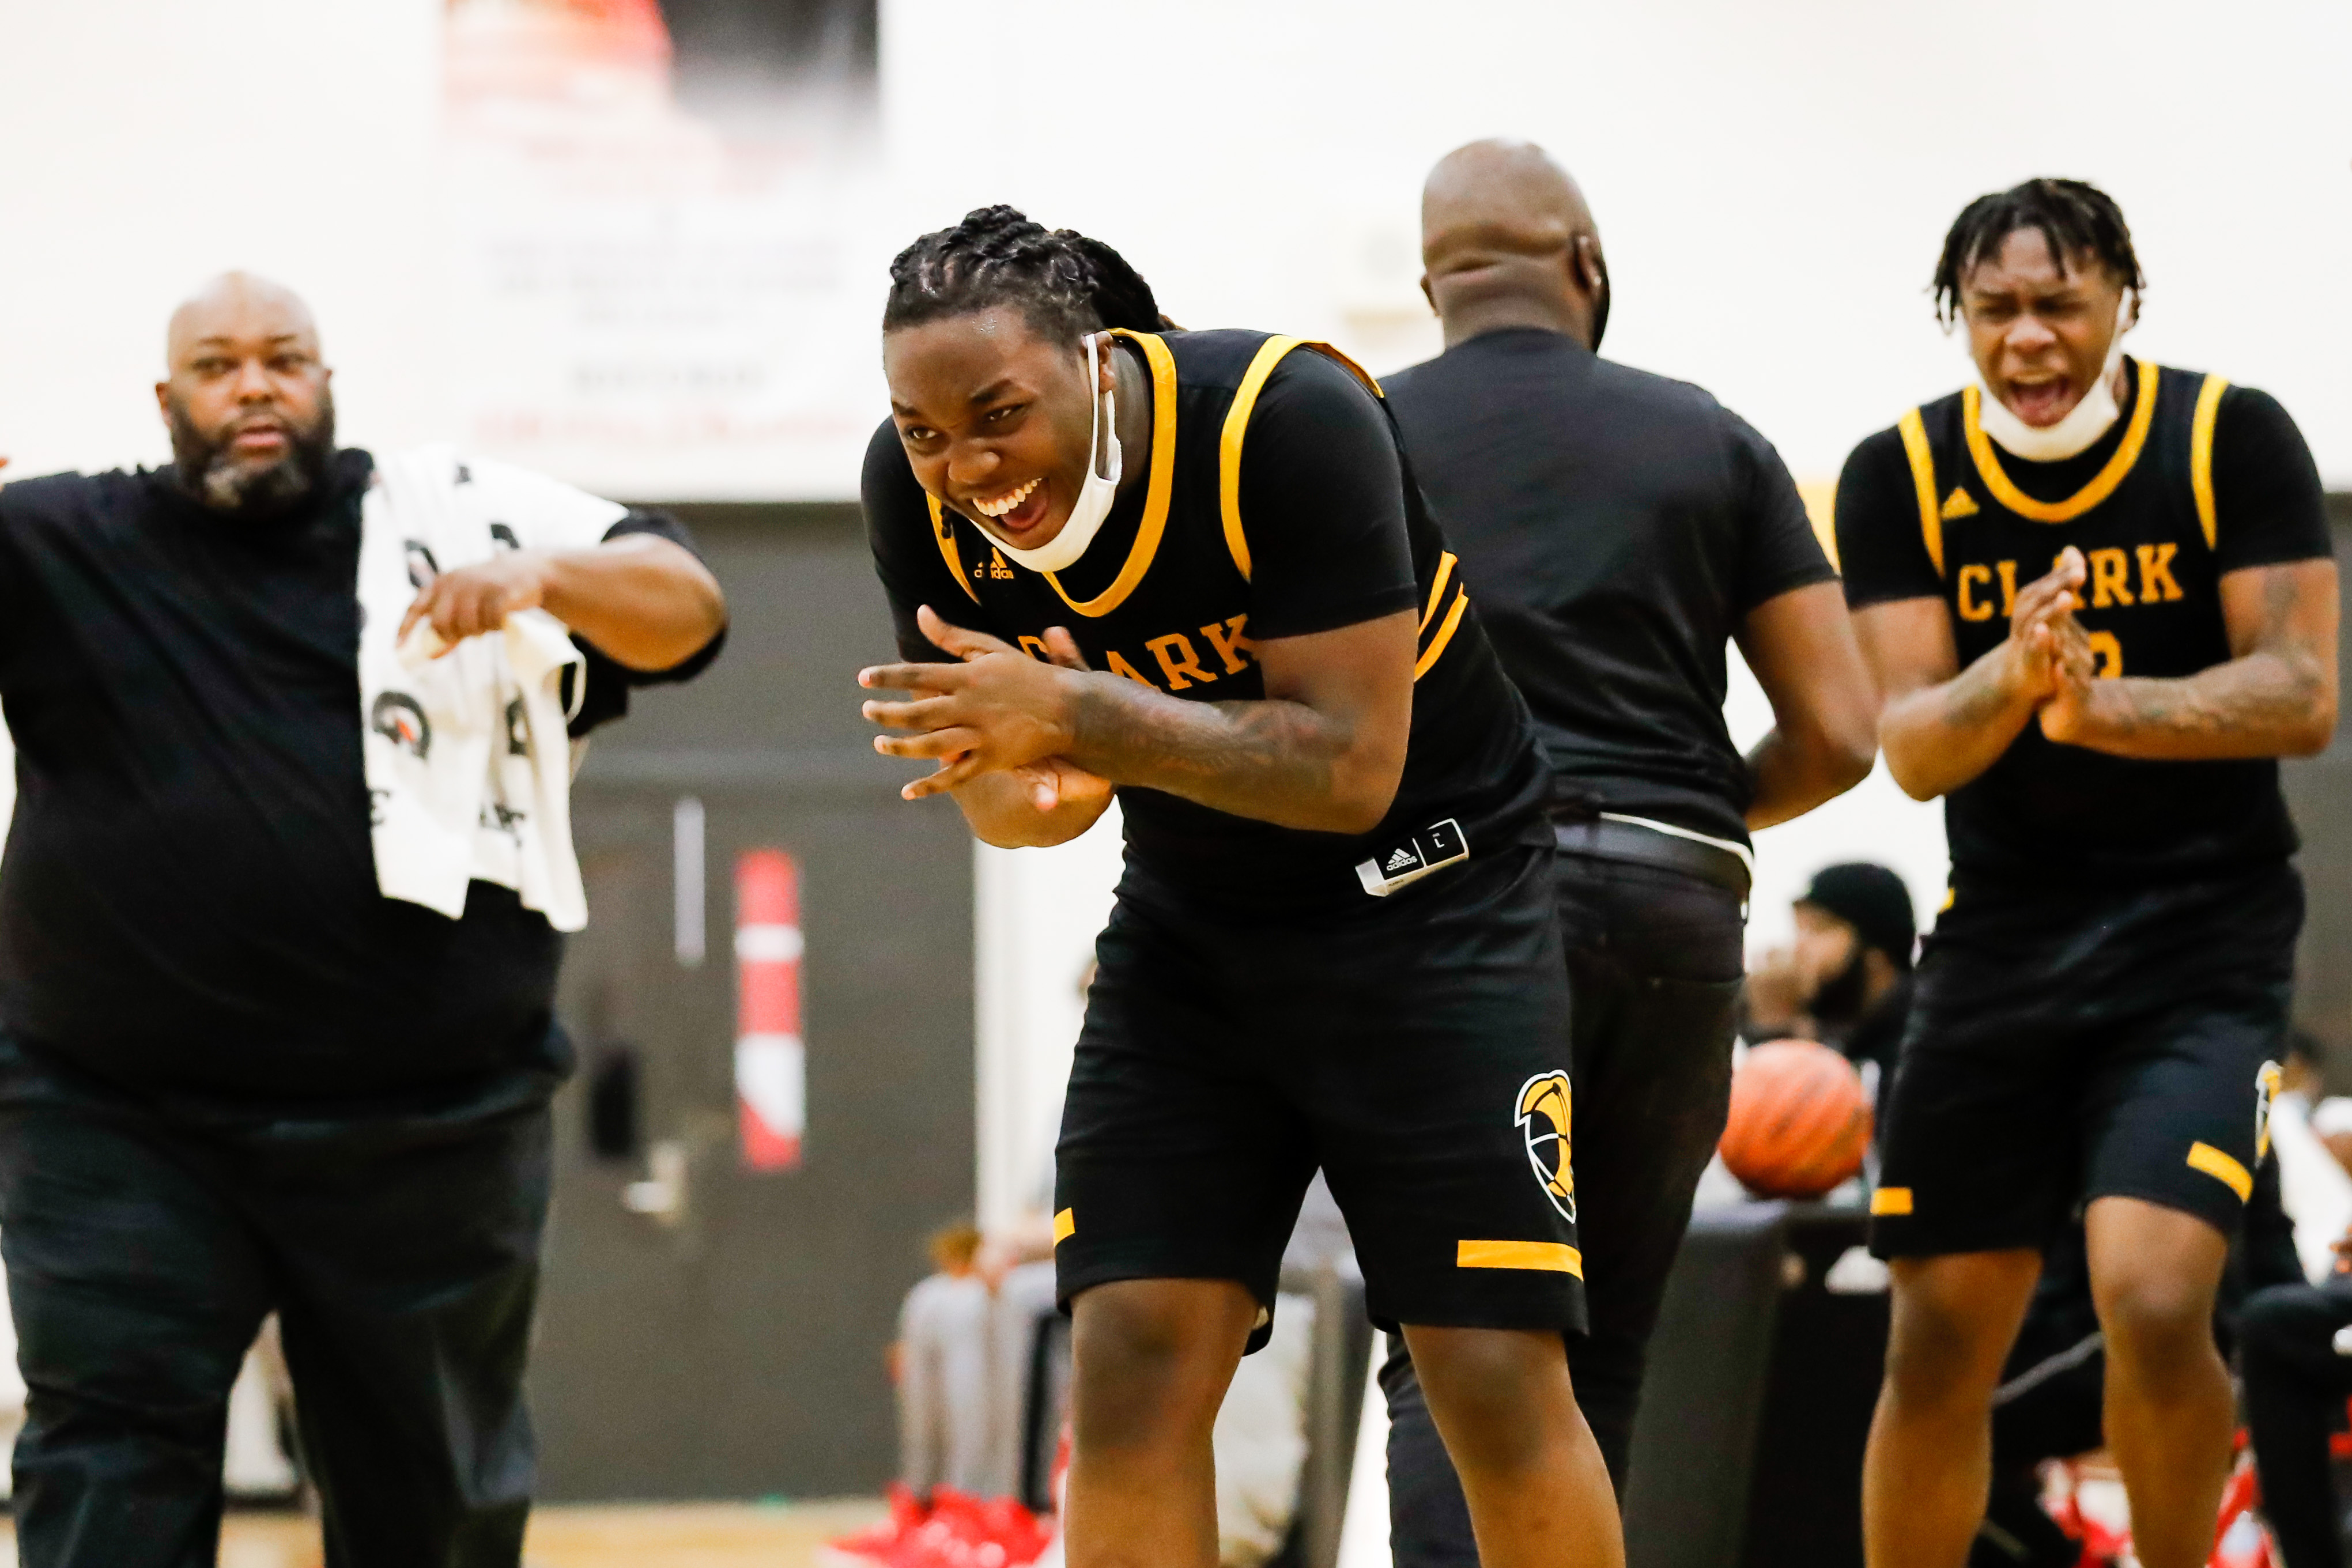 Clark players react during a game against North Lawndale.